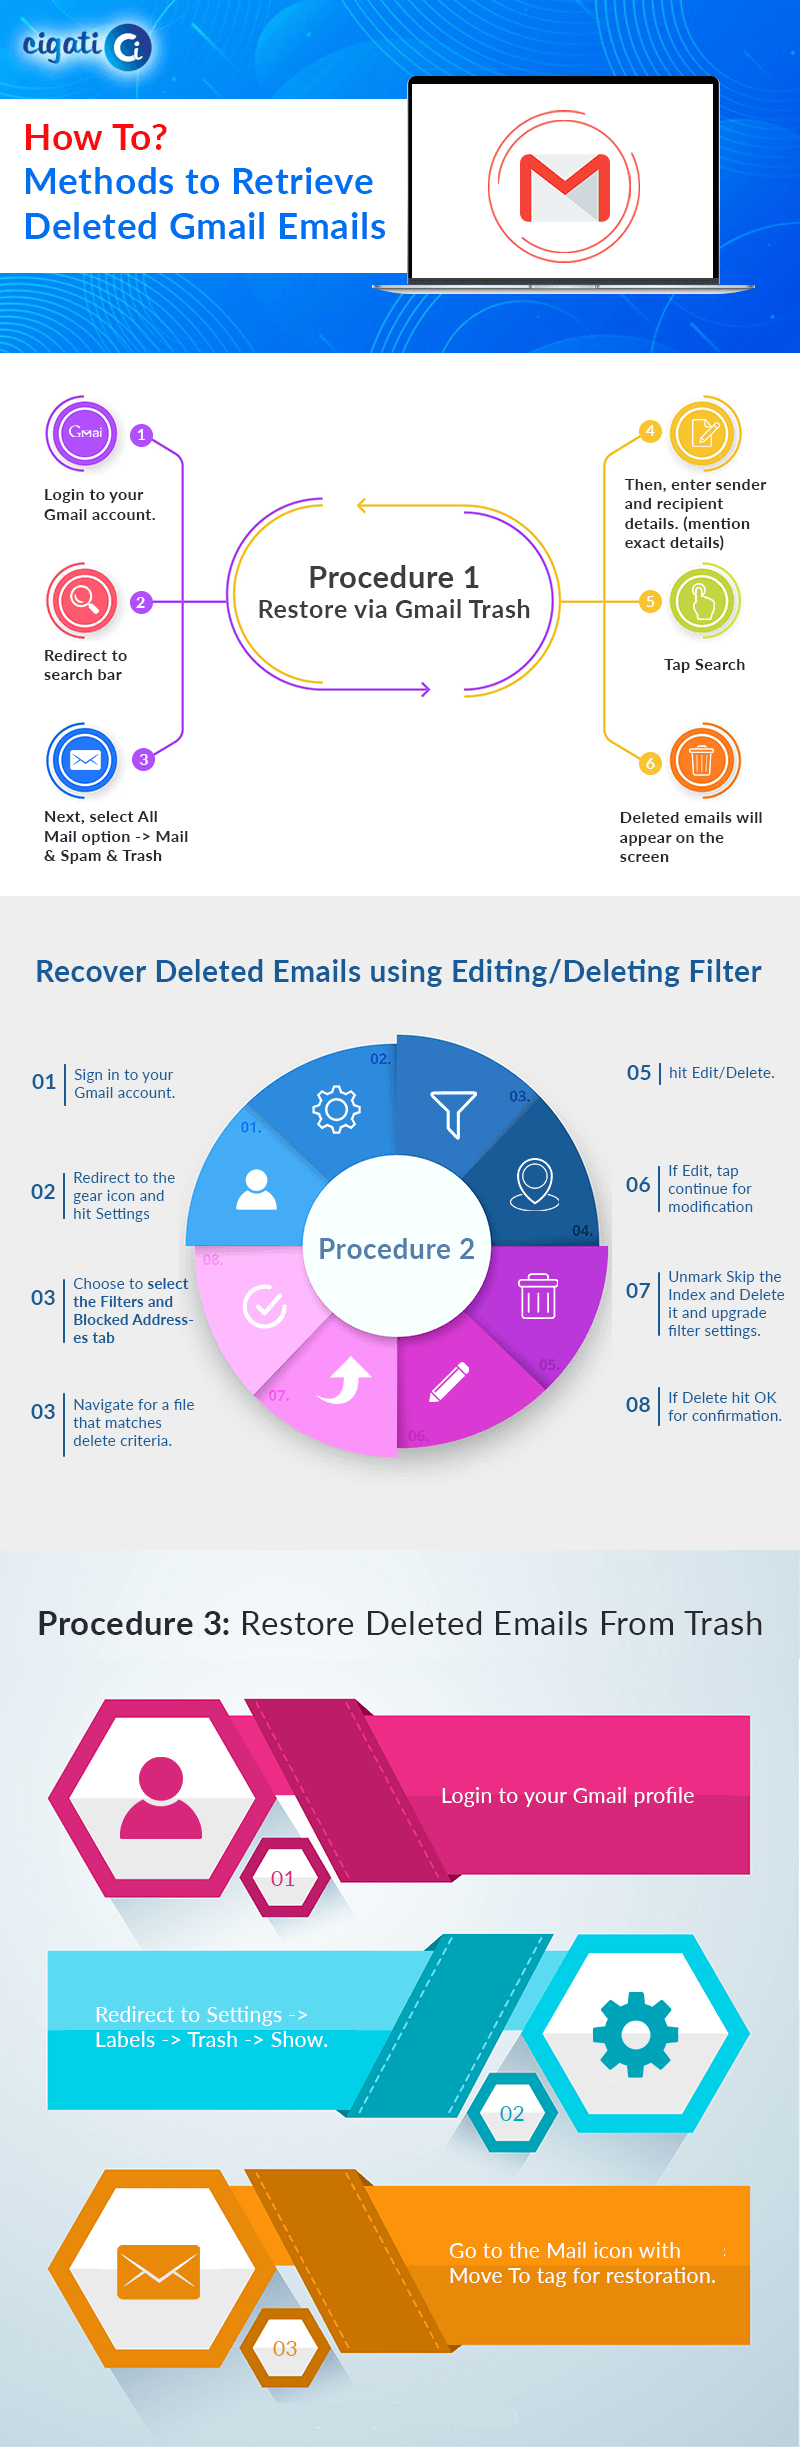 Restore permanently deleted emails from Gmail Trash